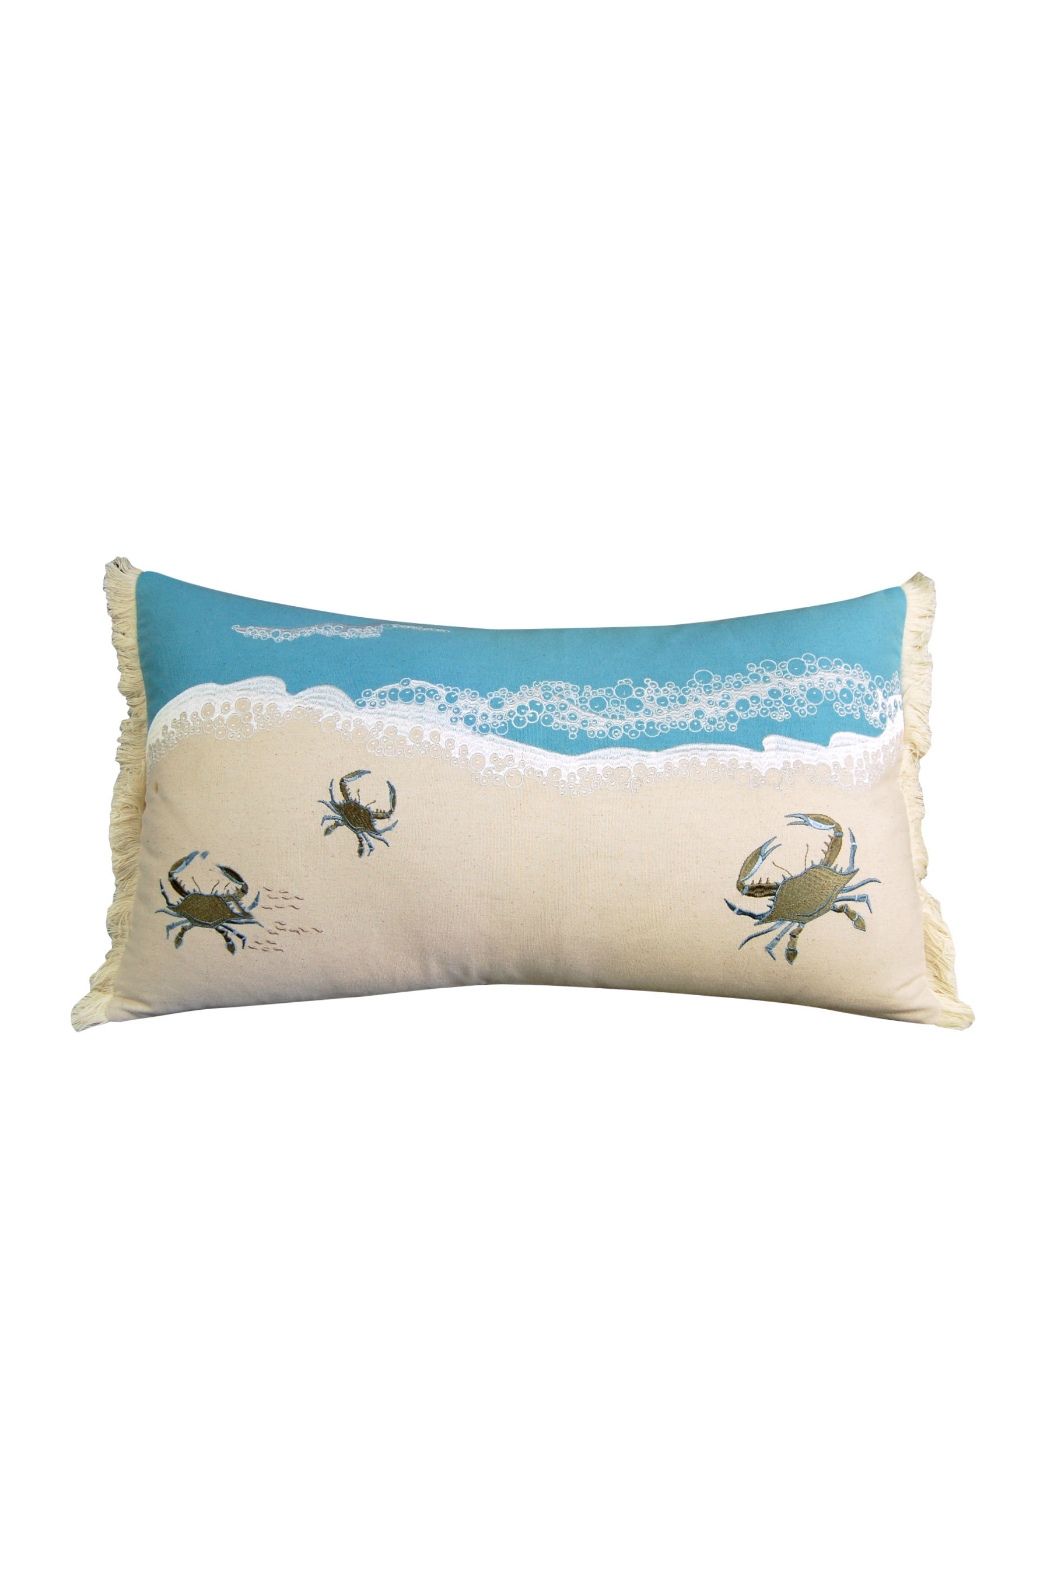 RIGHT SIDE DESIGN Crab with Waves Pillow - Indoor Cotton - Main Image